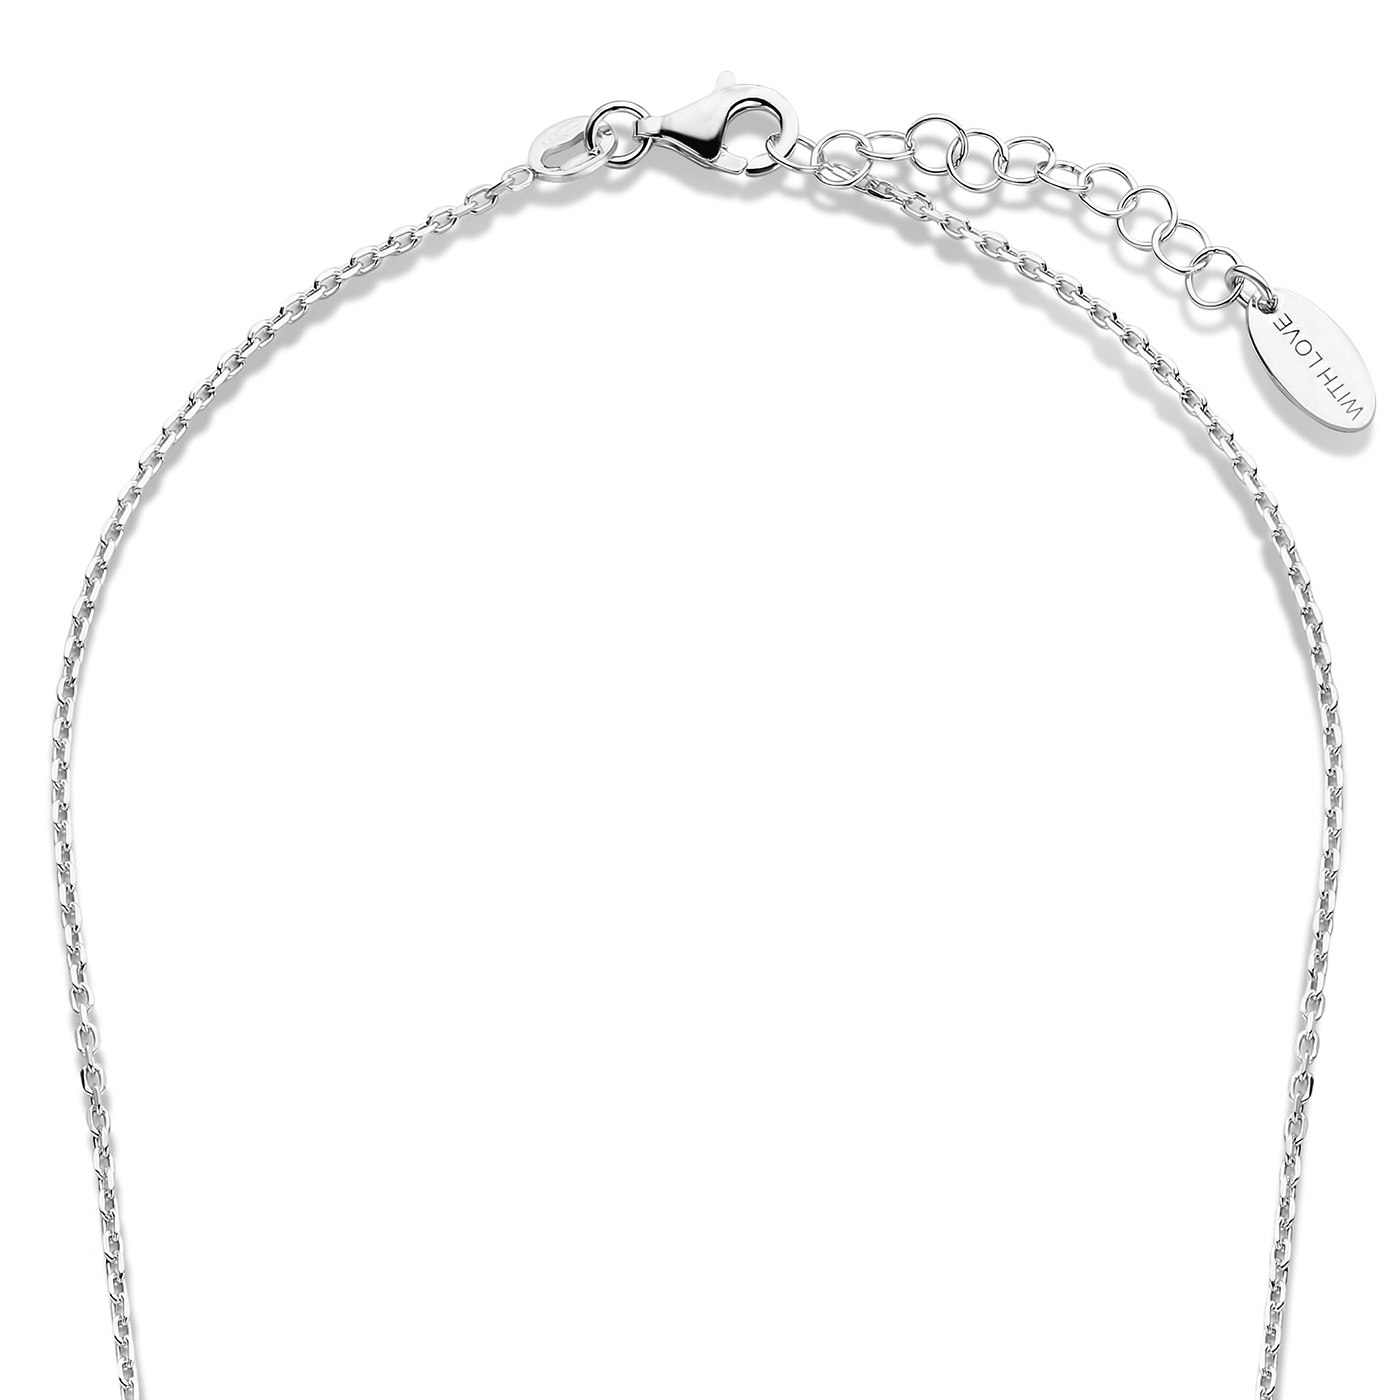 May Sparkle Happiness Sunny 925 sterling zilveren ketting